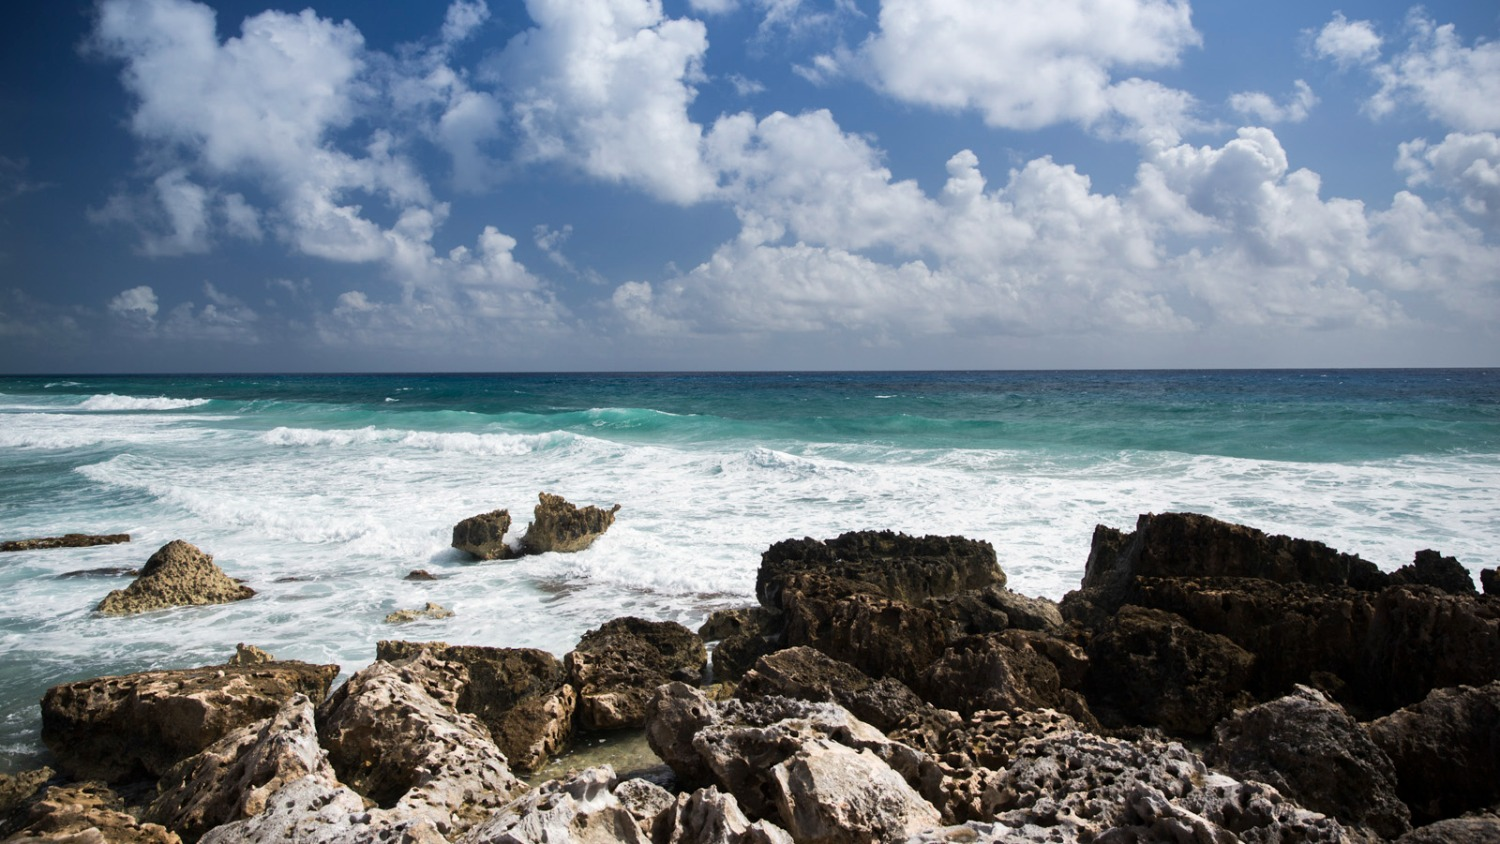 RCI_Cozumel_ShoreEx_014_edited